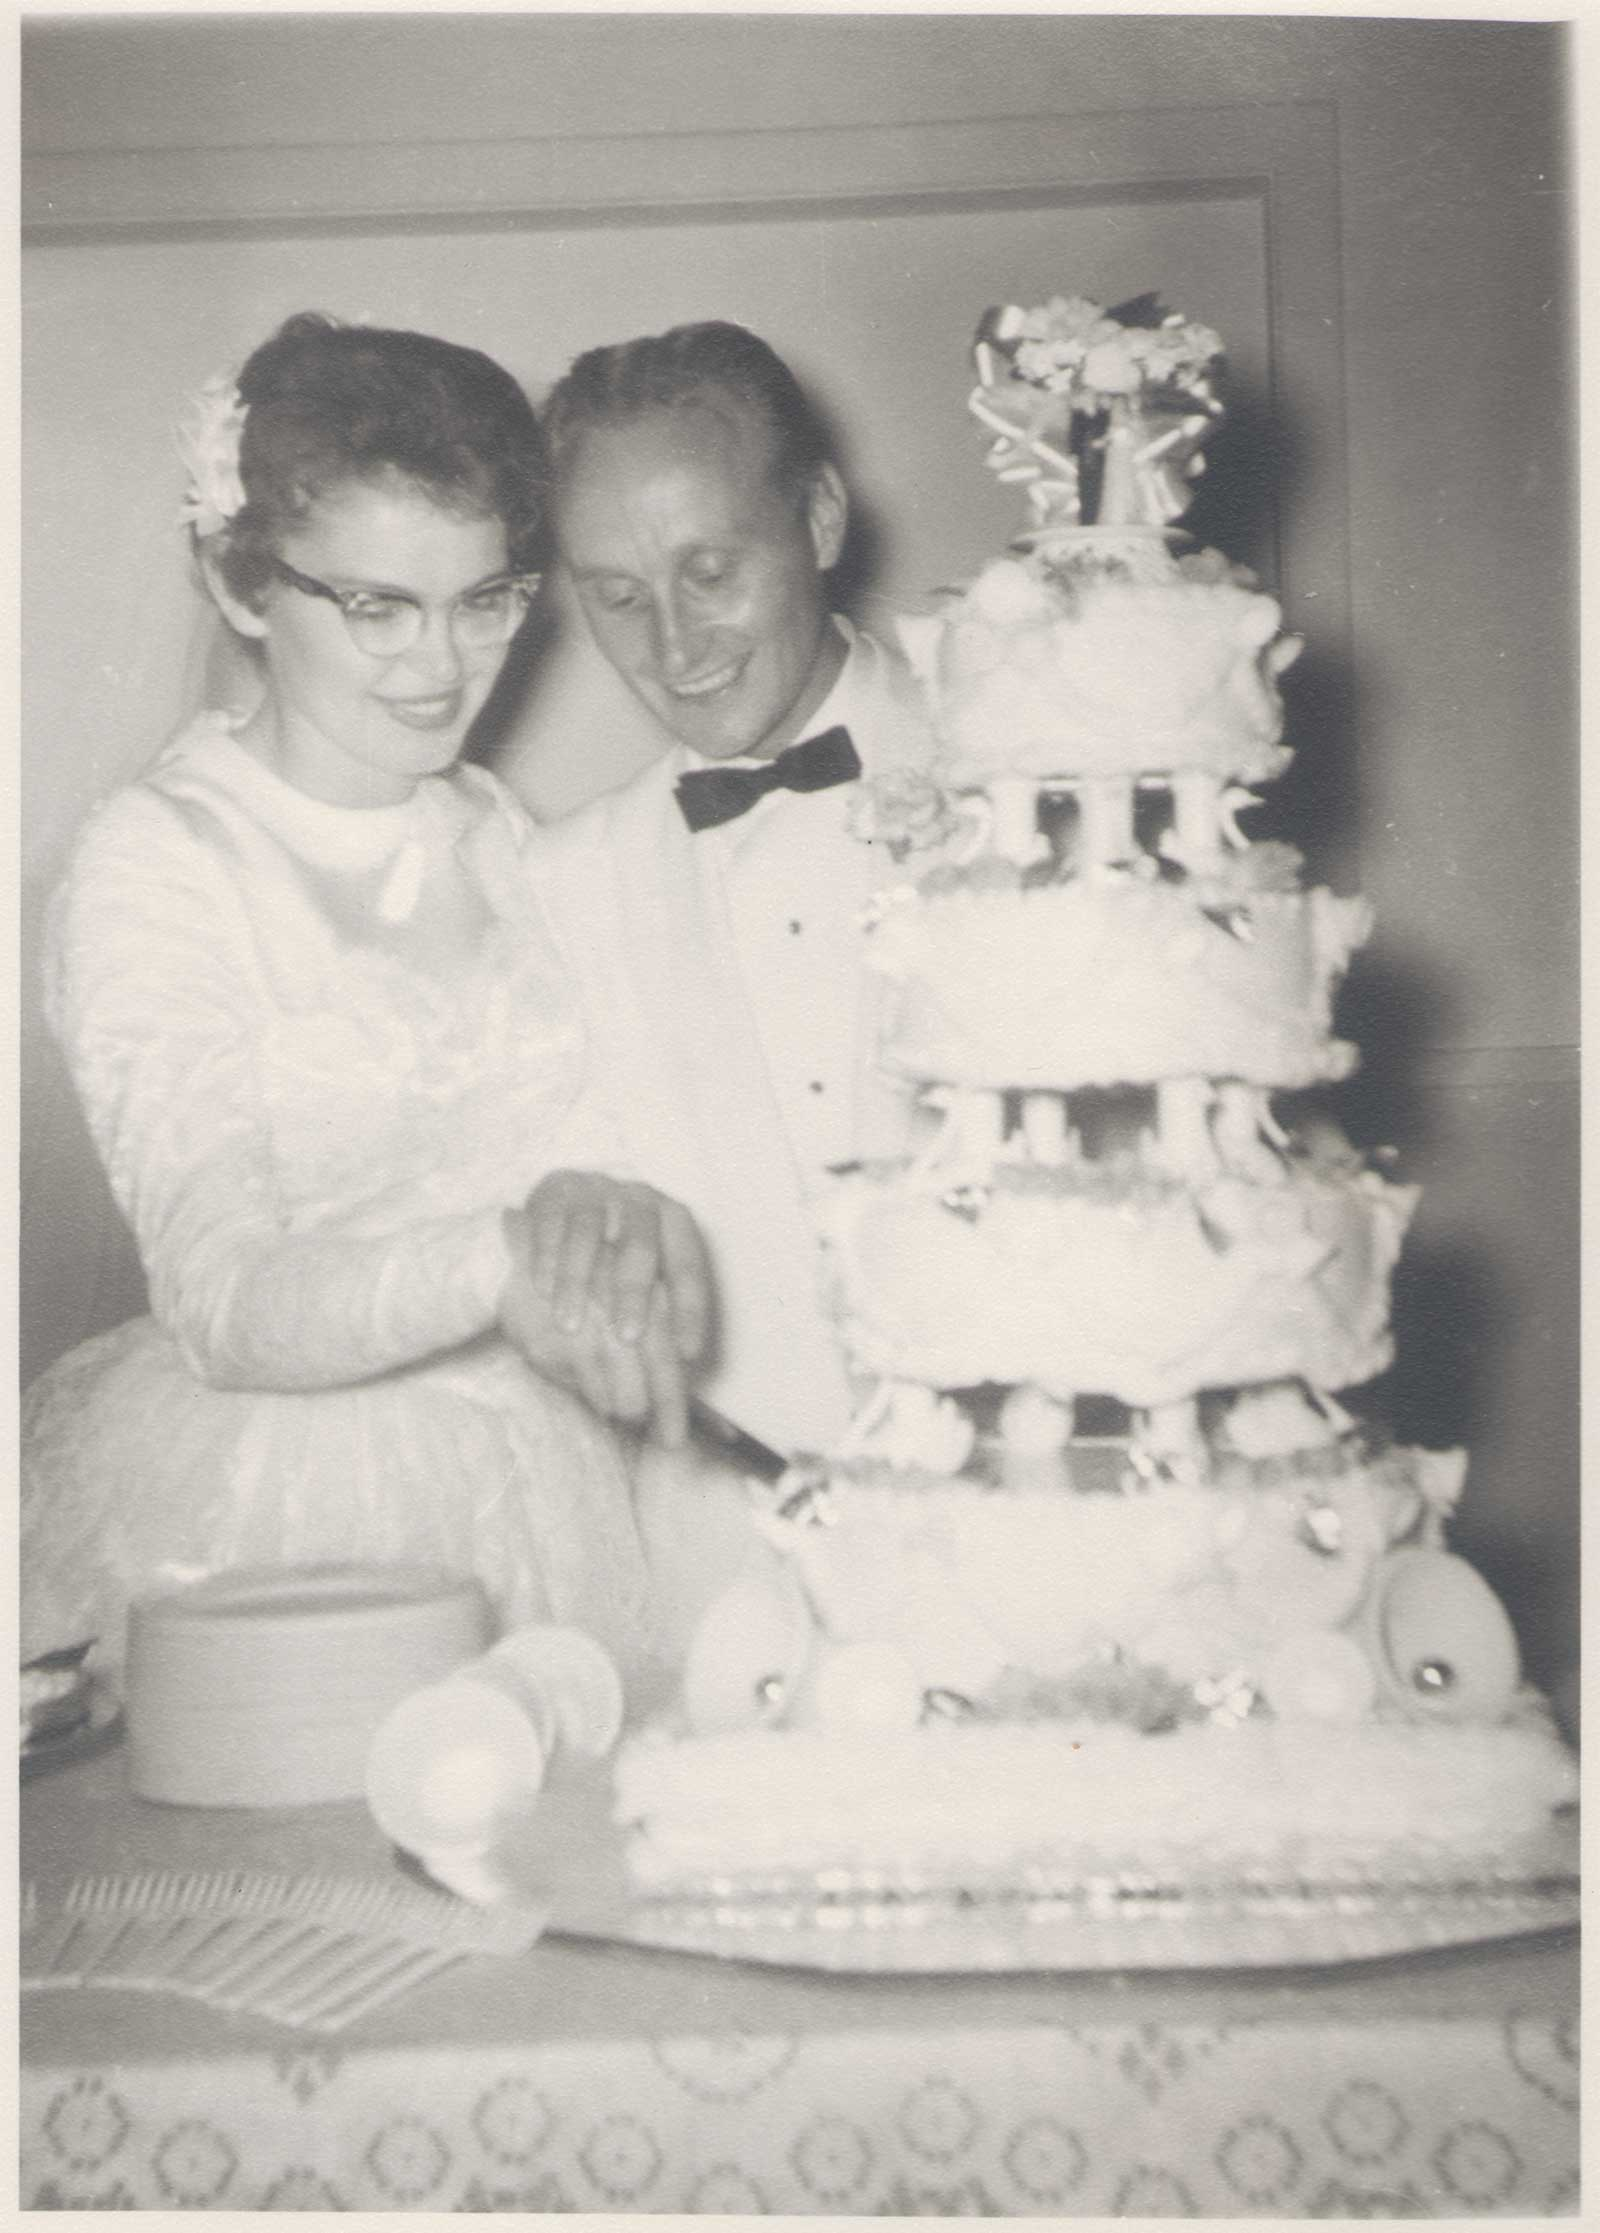 Dorene & Max Sudweeks (my parents) who this month celebrate their 56th wedding anniversary.